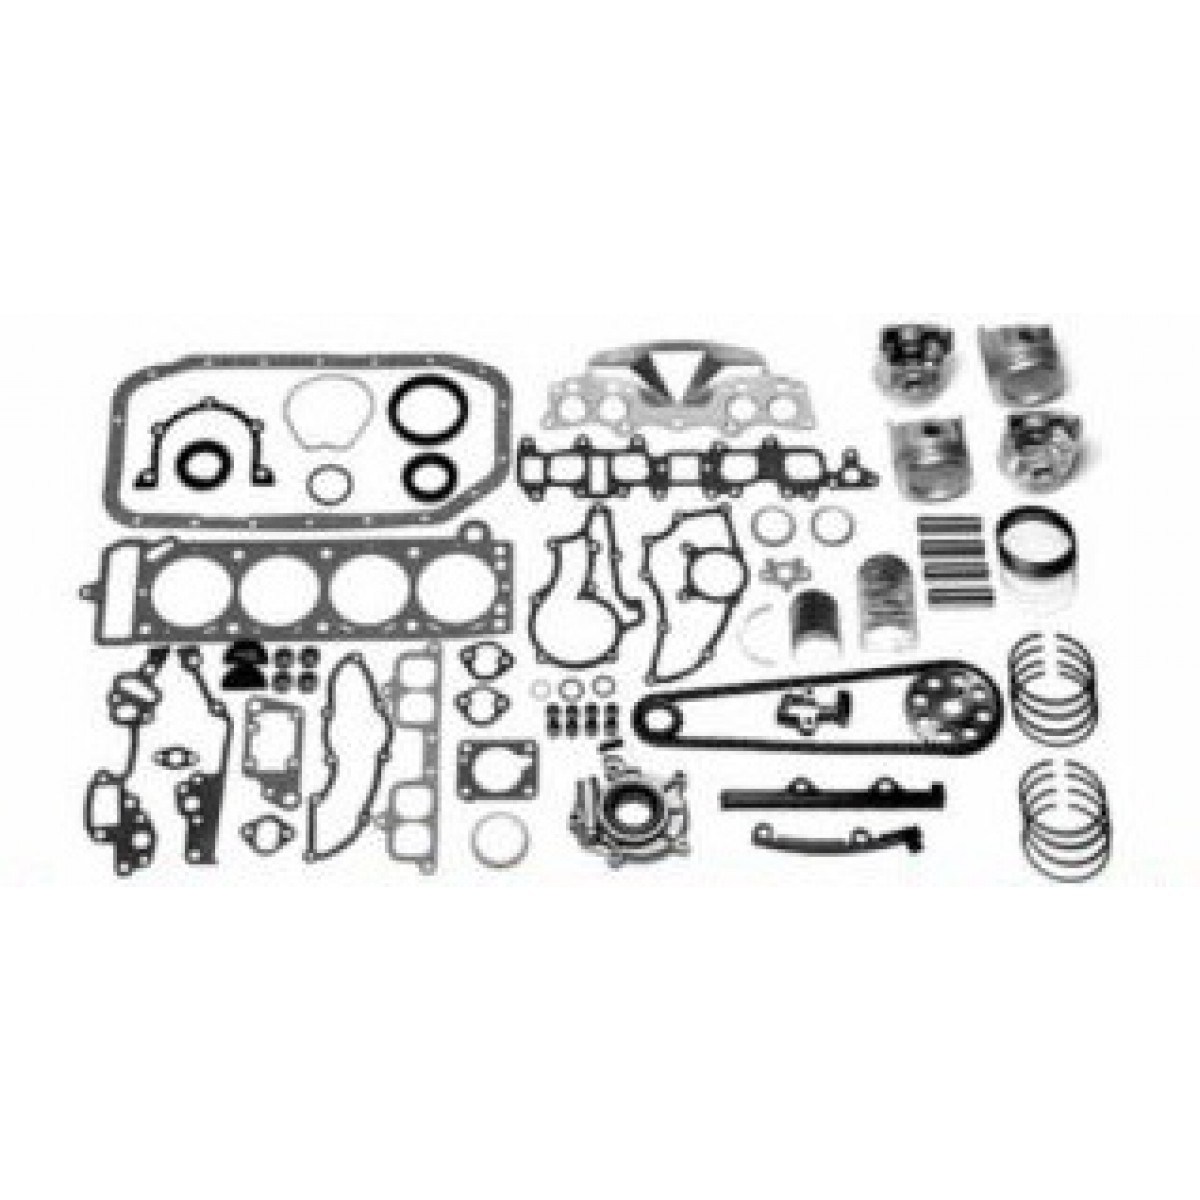 1995-99 u0026 39  chrysler 2 0l 4 cyl dohc 16v 420a - ekc2095d master engine kit - dodge